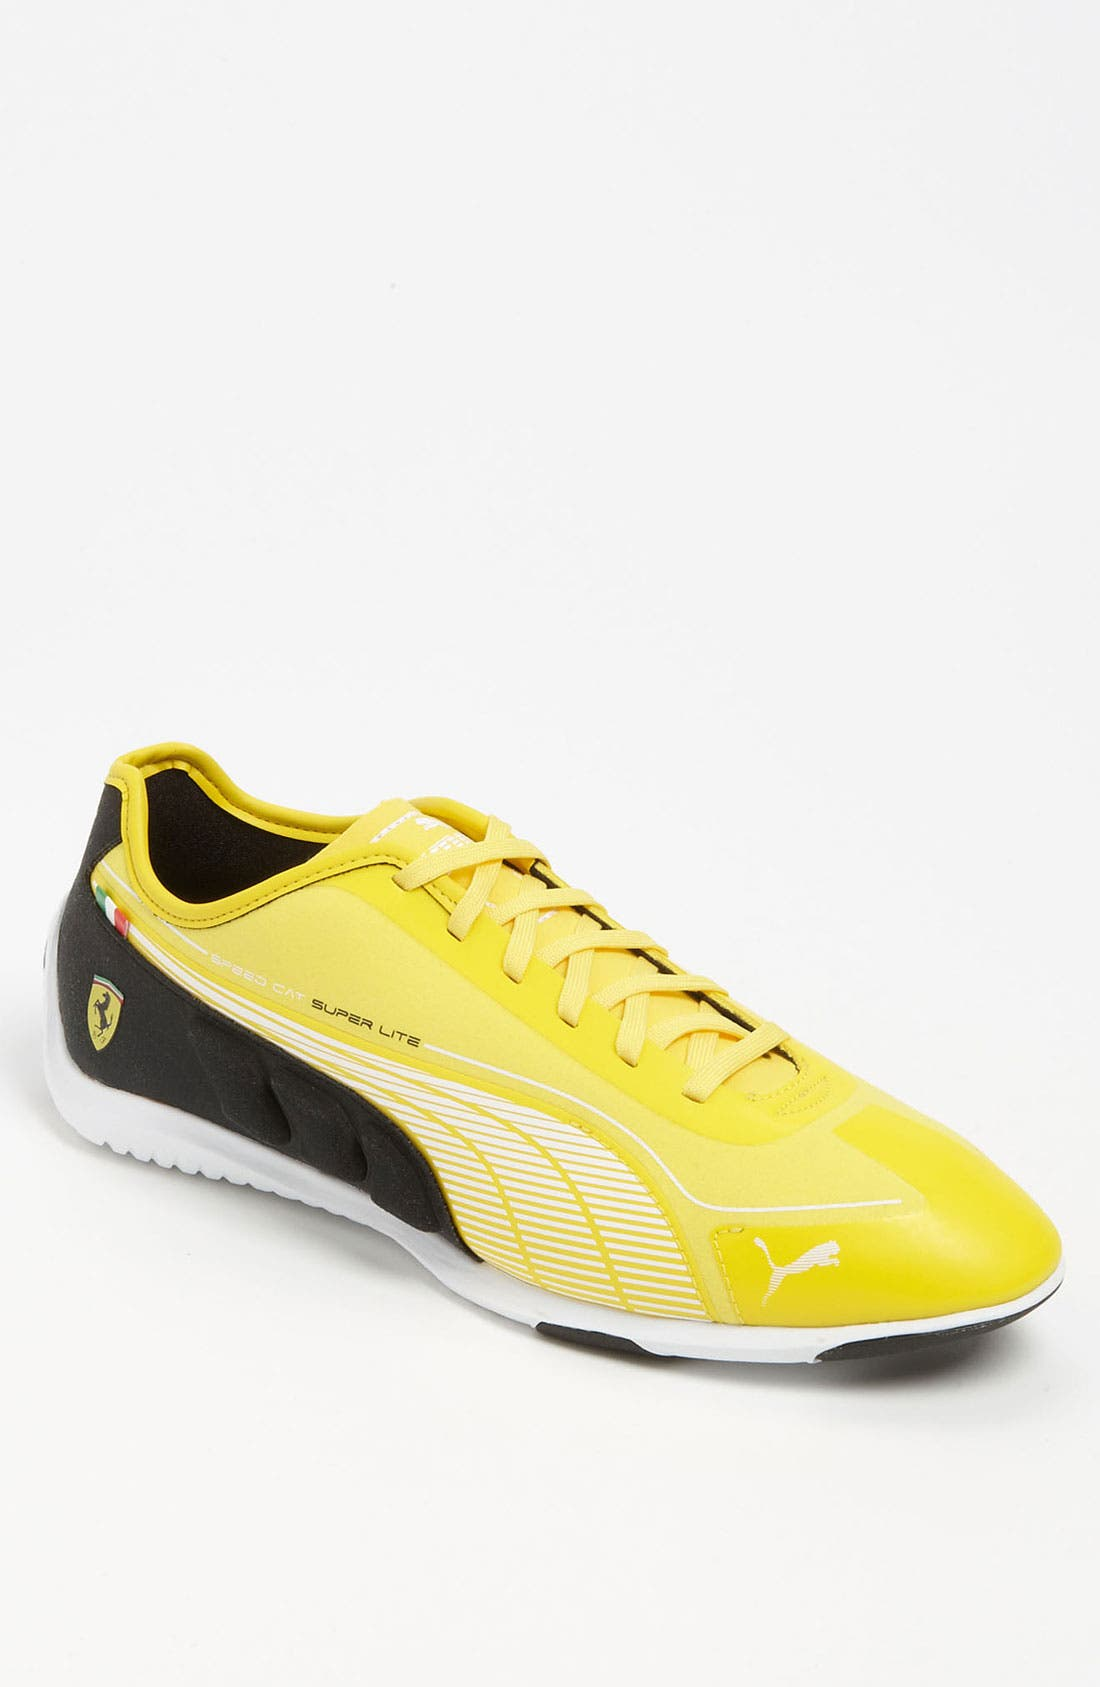 Alternate Image 1 Selected - PUMA 'Ferrari Speed Cat Super Lite' Sneaker (Men)